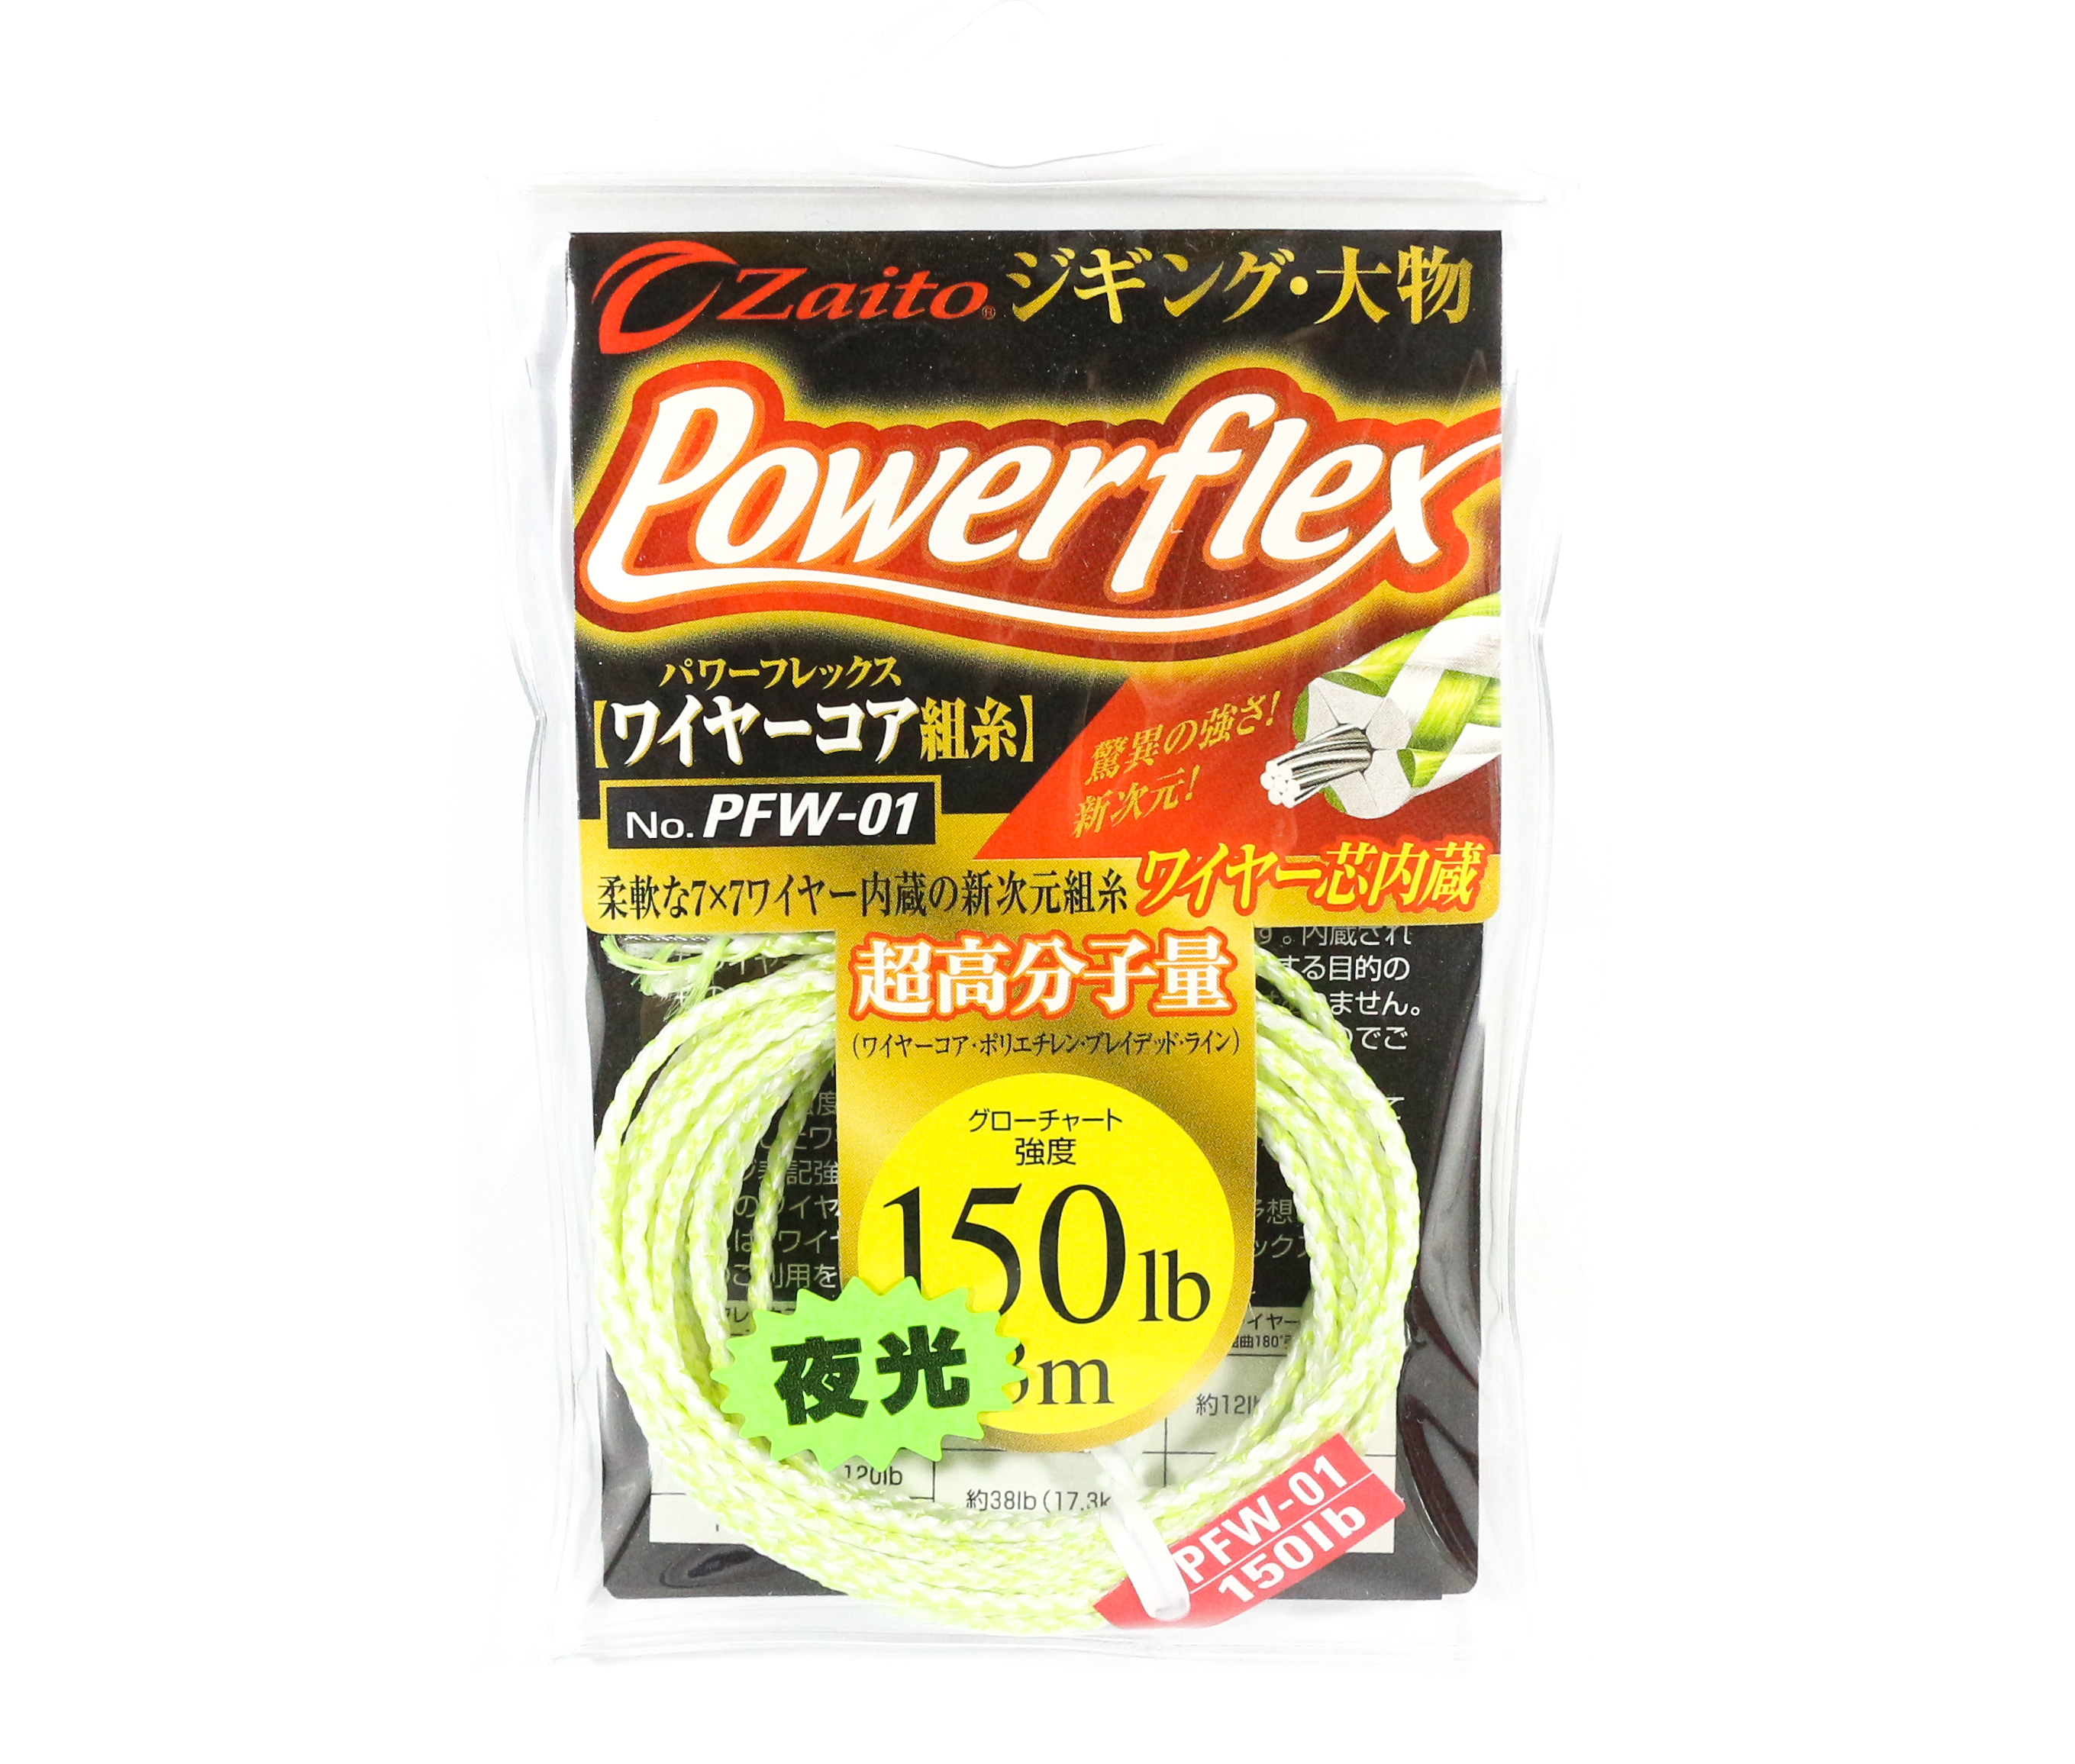 Owner PFW-01 Power Flex Assist Rope with Inner Core Size 150lb (5413)